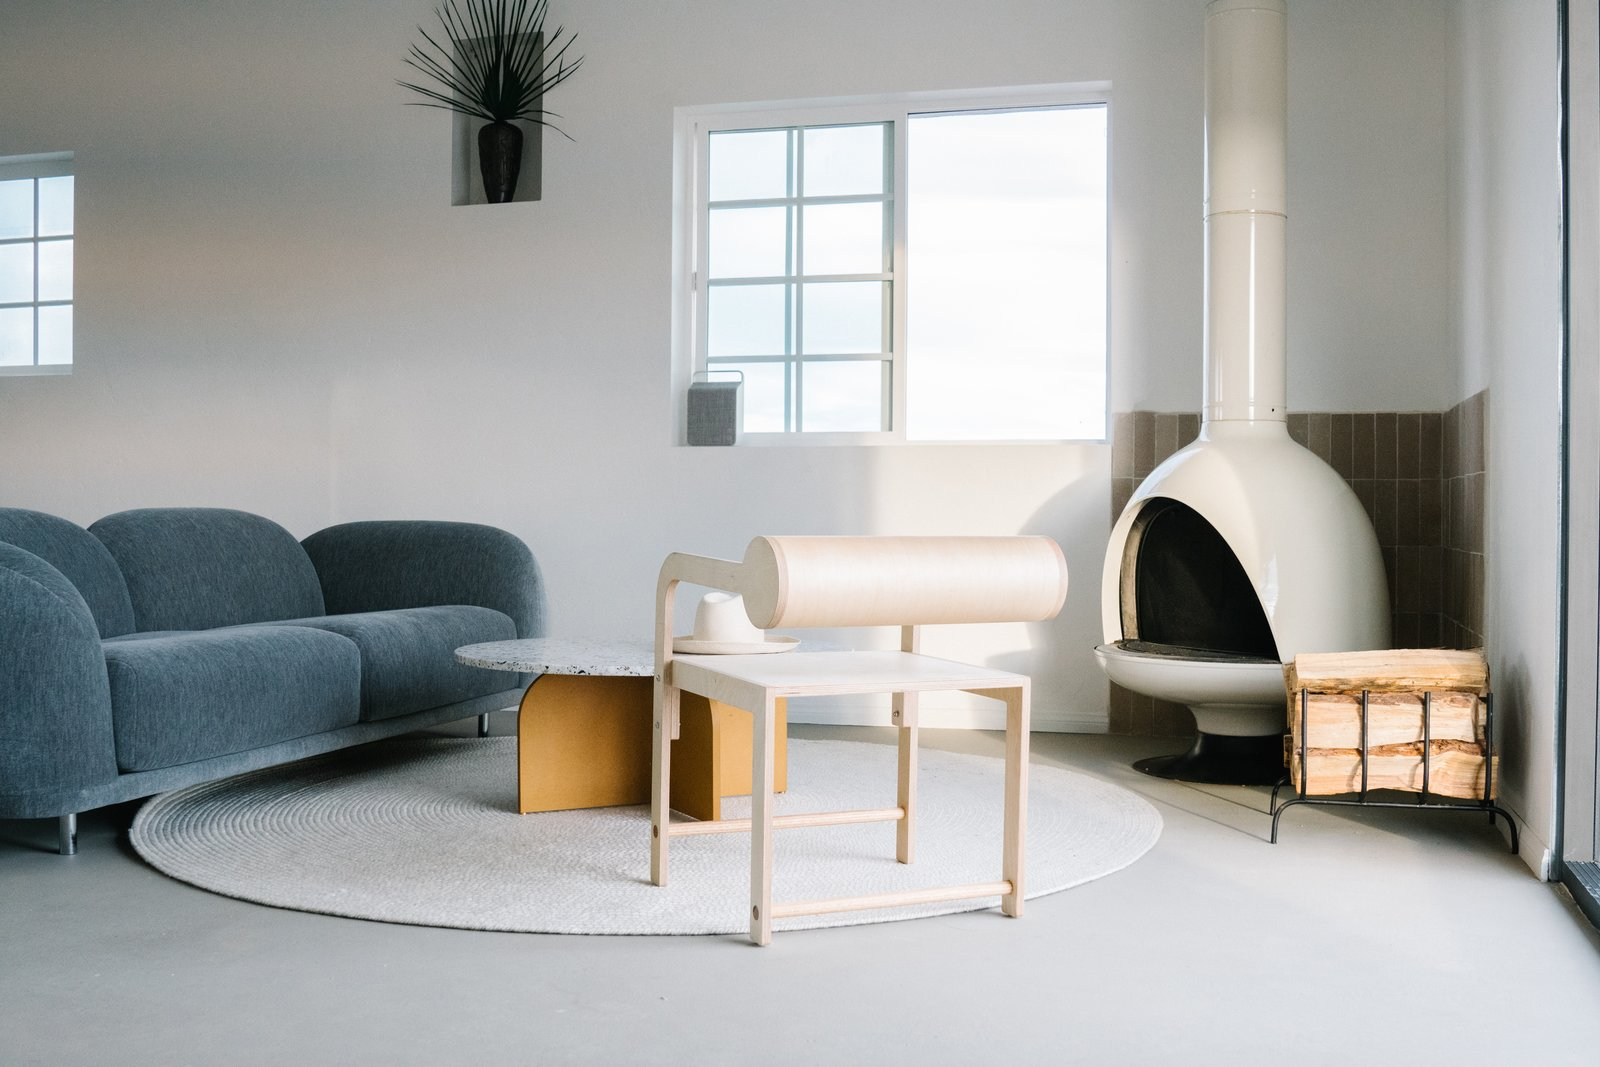 Living Room, Concrete Floor, Sofa, Coffee Tables, and Hanging Fireplace  Casa Mami